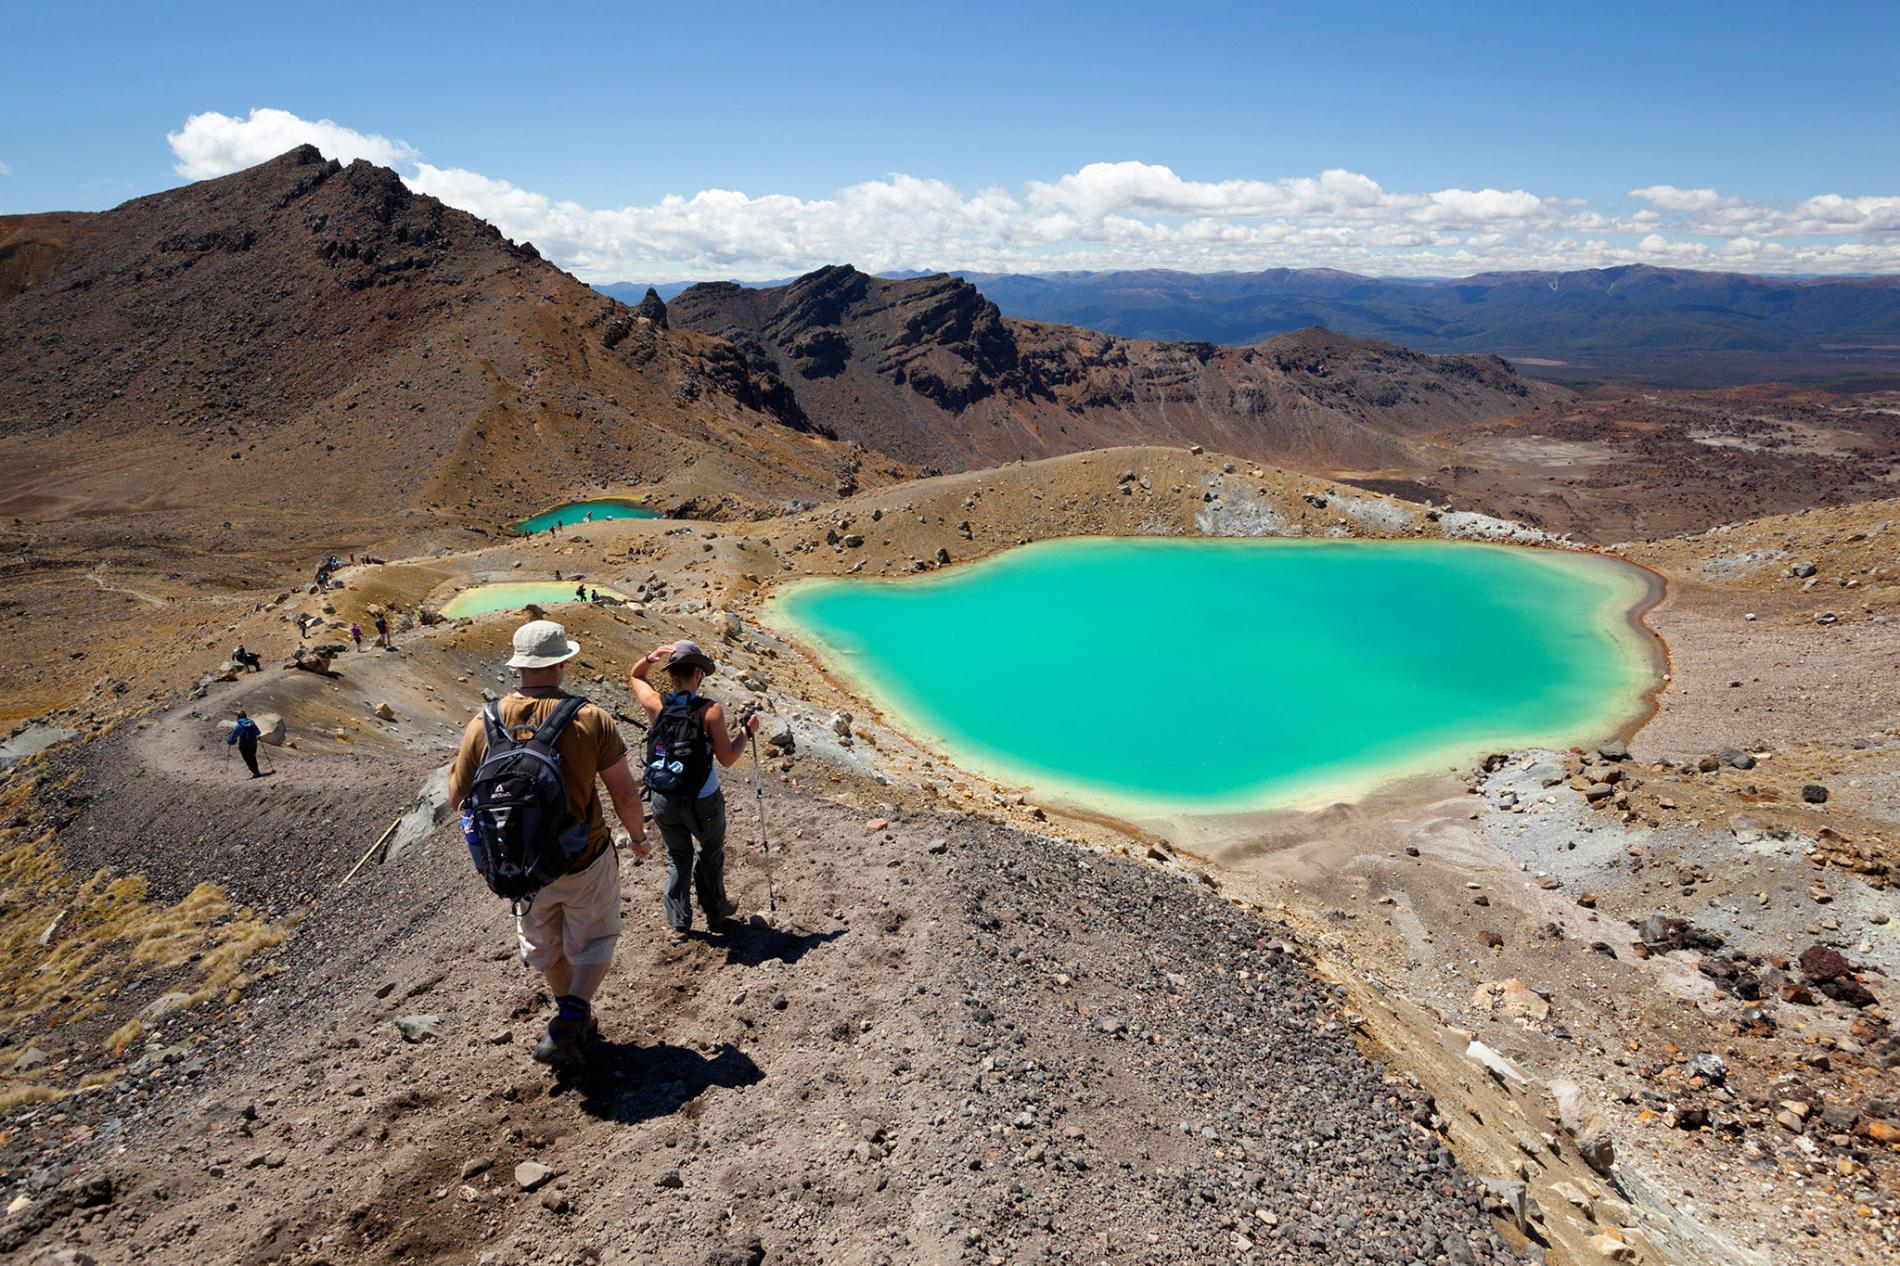 tongariro-national-park-new-zealand-hikers.ngsversion.1493937062860.adapt.1900.1